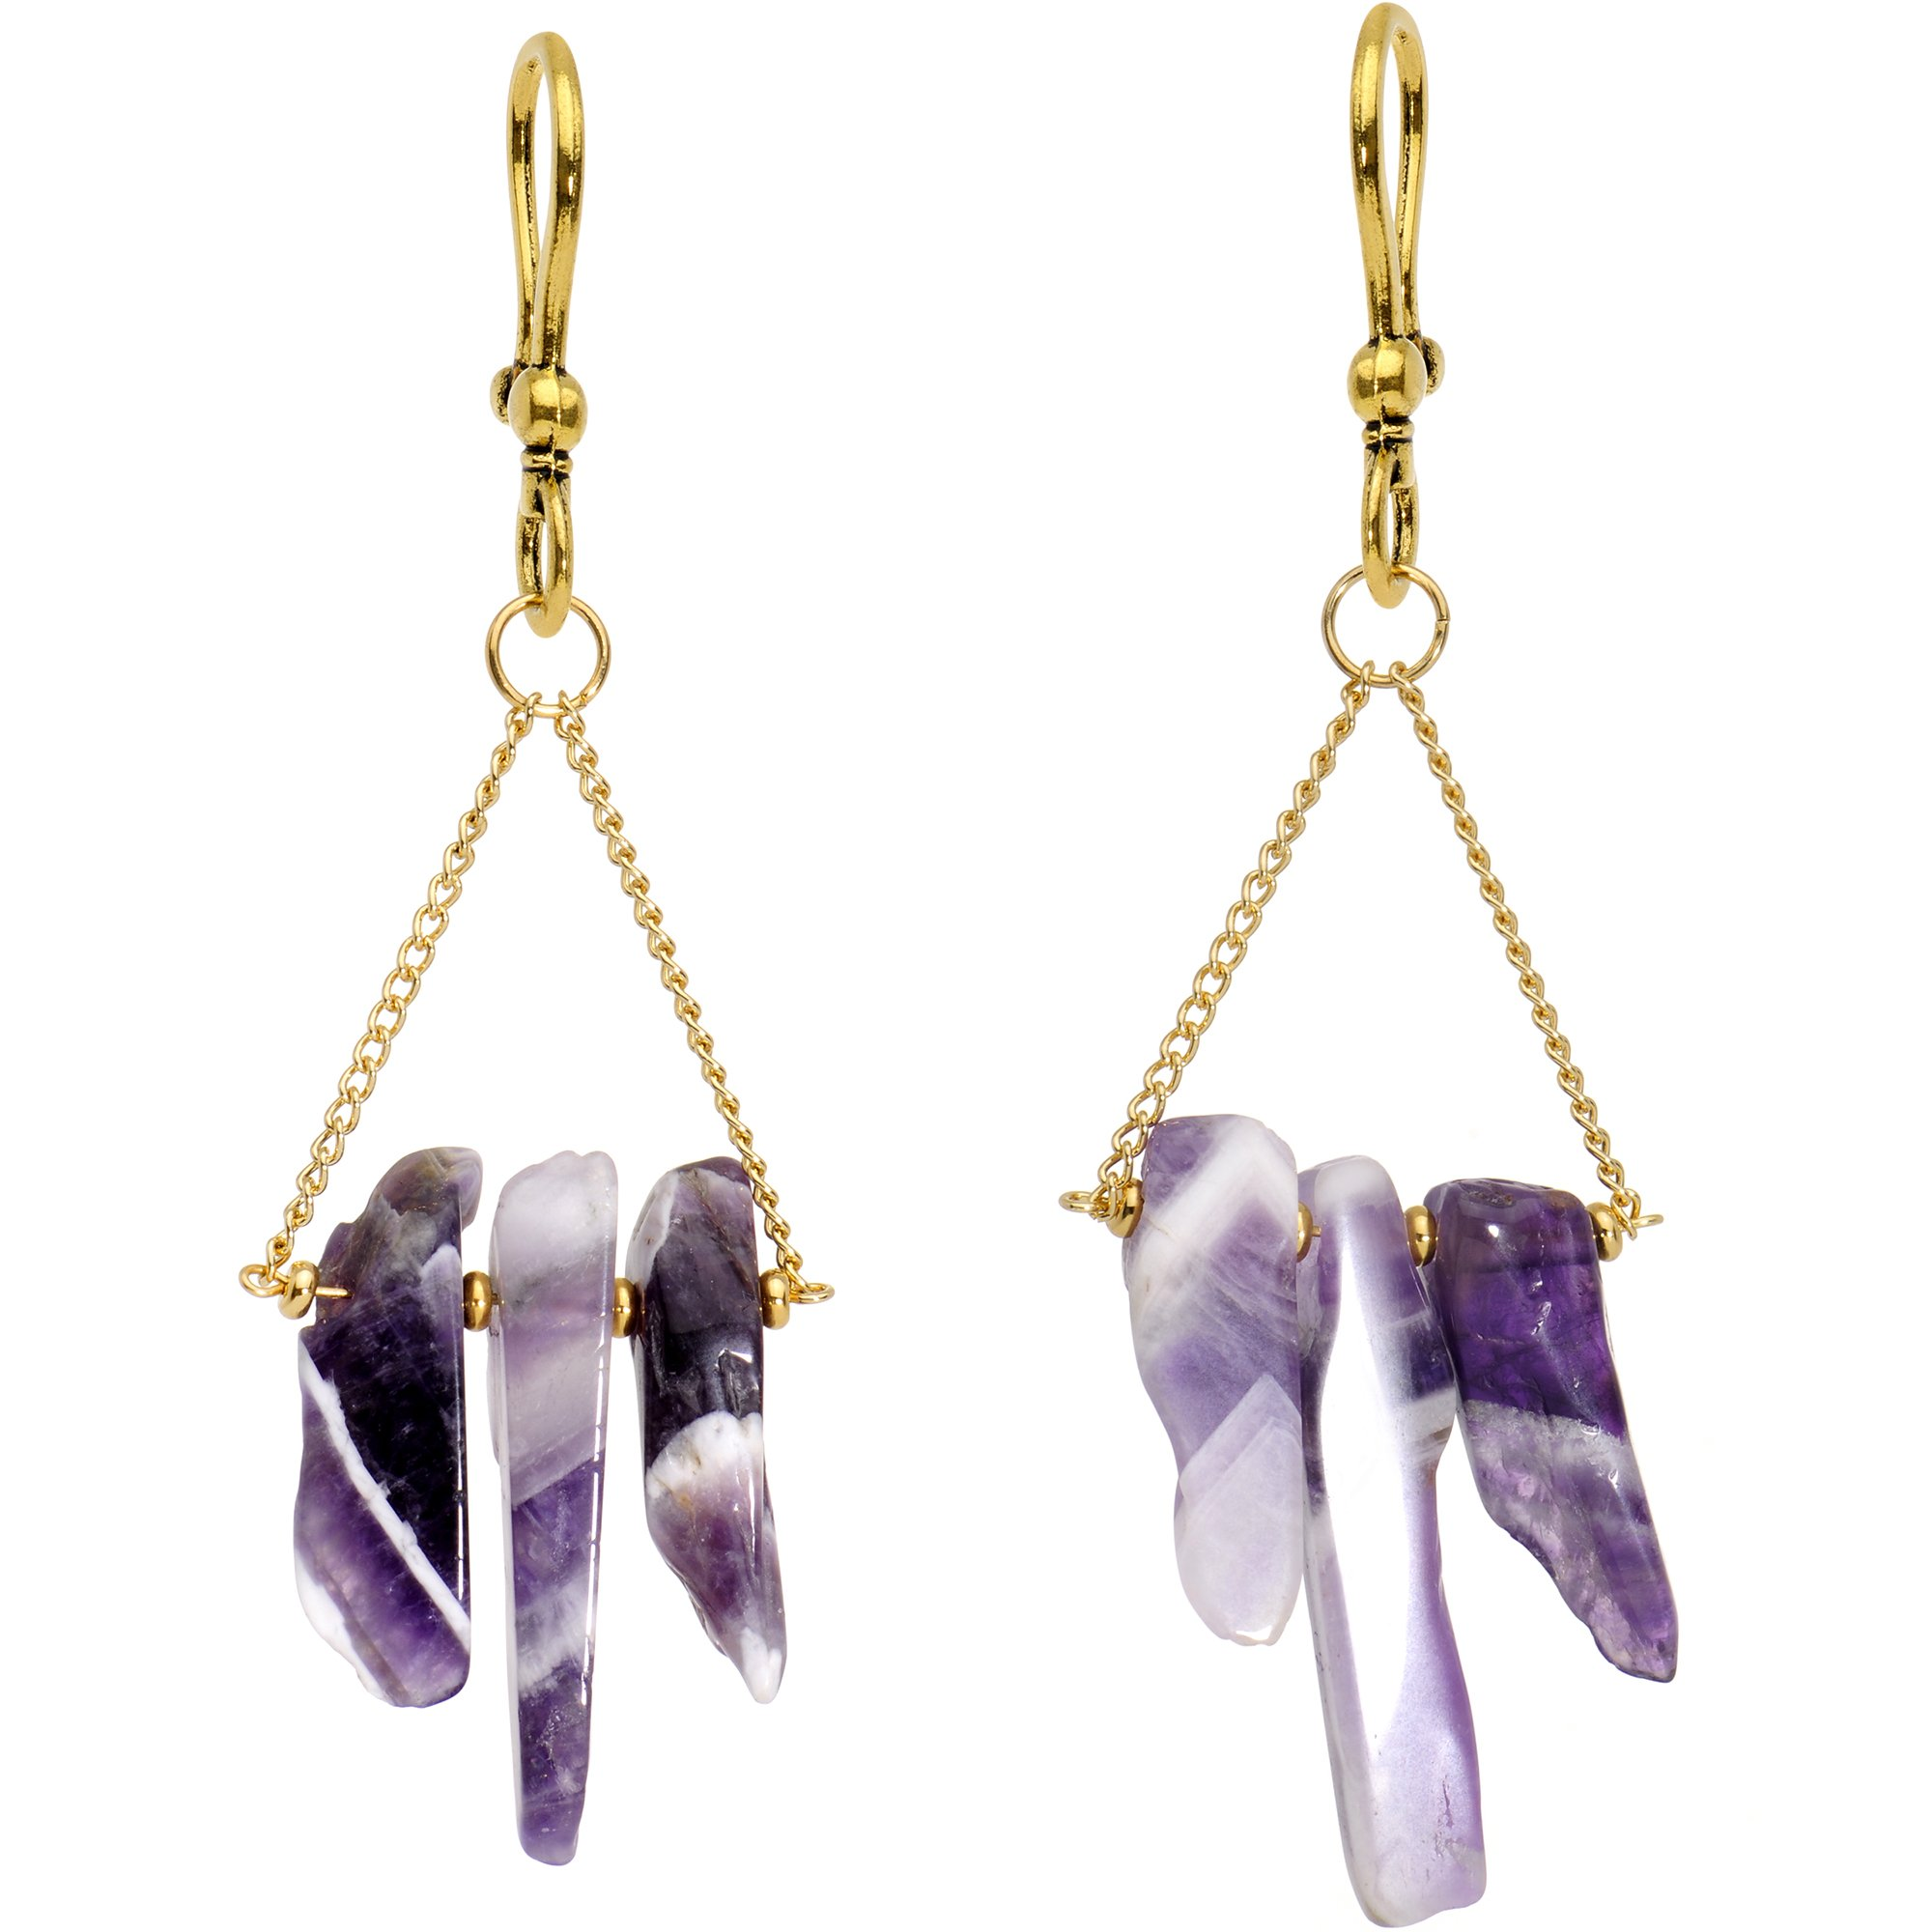 Body Candy Handcrafted Gold Plated Natural Amethyst Stone Ear Weights